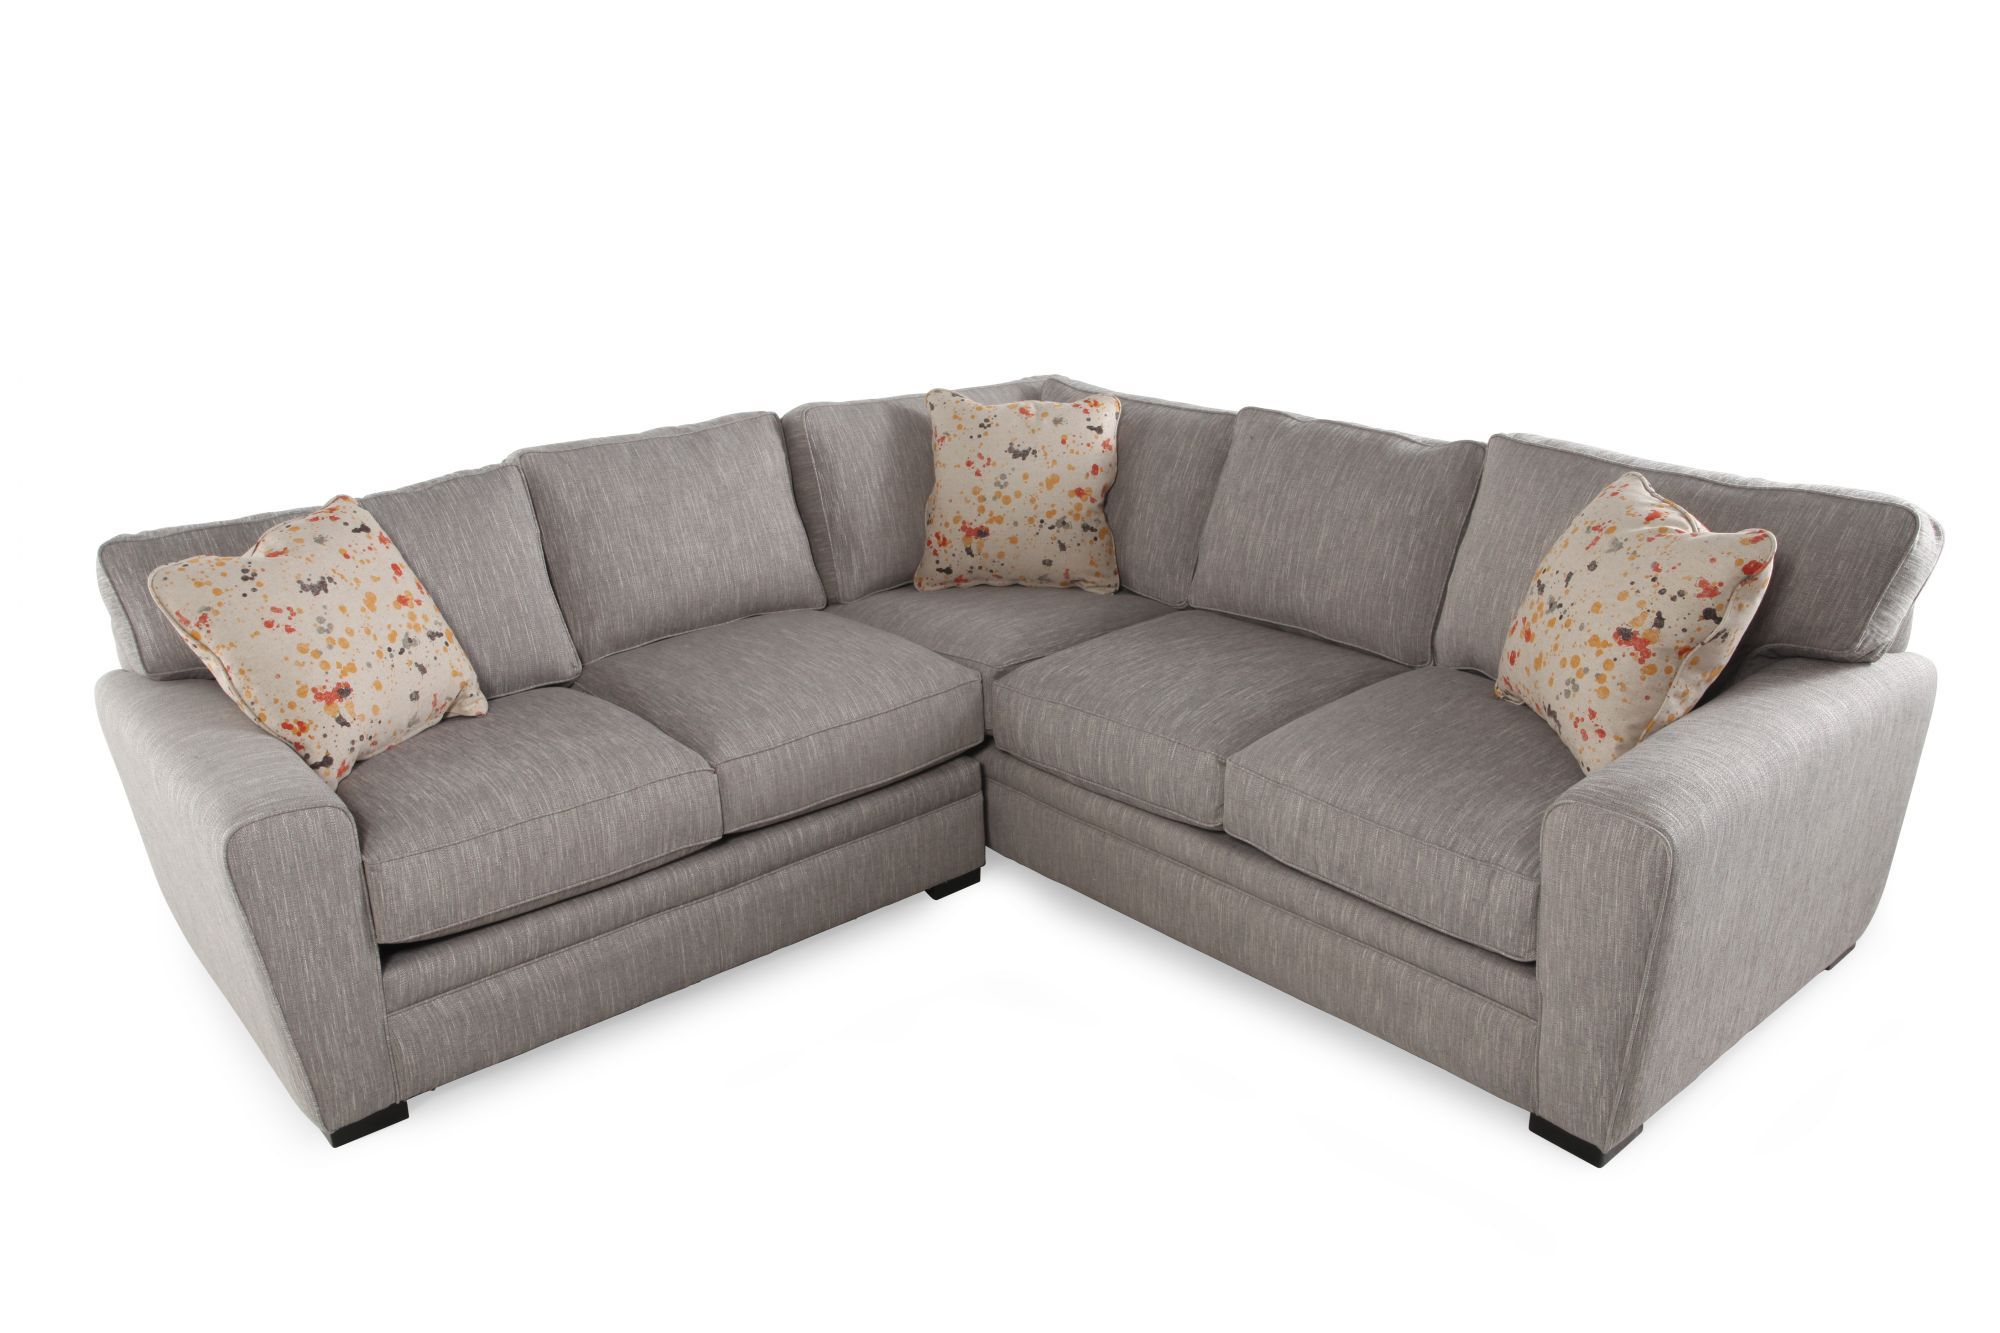 Fog - Jonathan Louis Artemis Two-Piece Sectional  Mathis Brothers